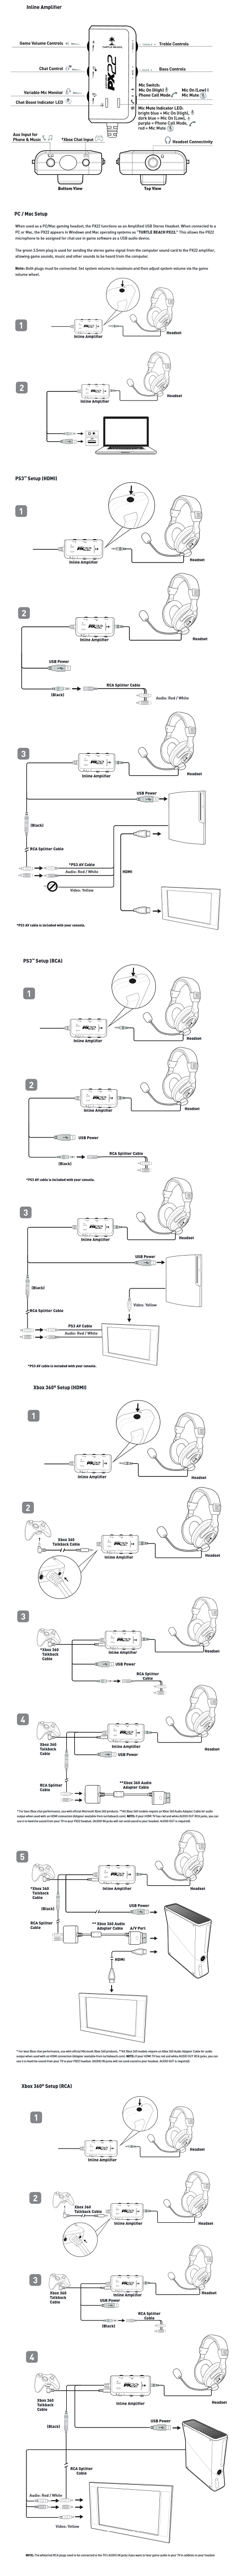 PX22_SETUP turtle beach px22 wiring diagram how to rewire turtle beach Ear Force PX21 at nearapp.co